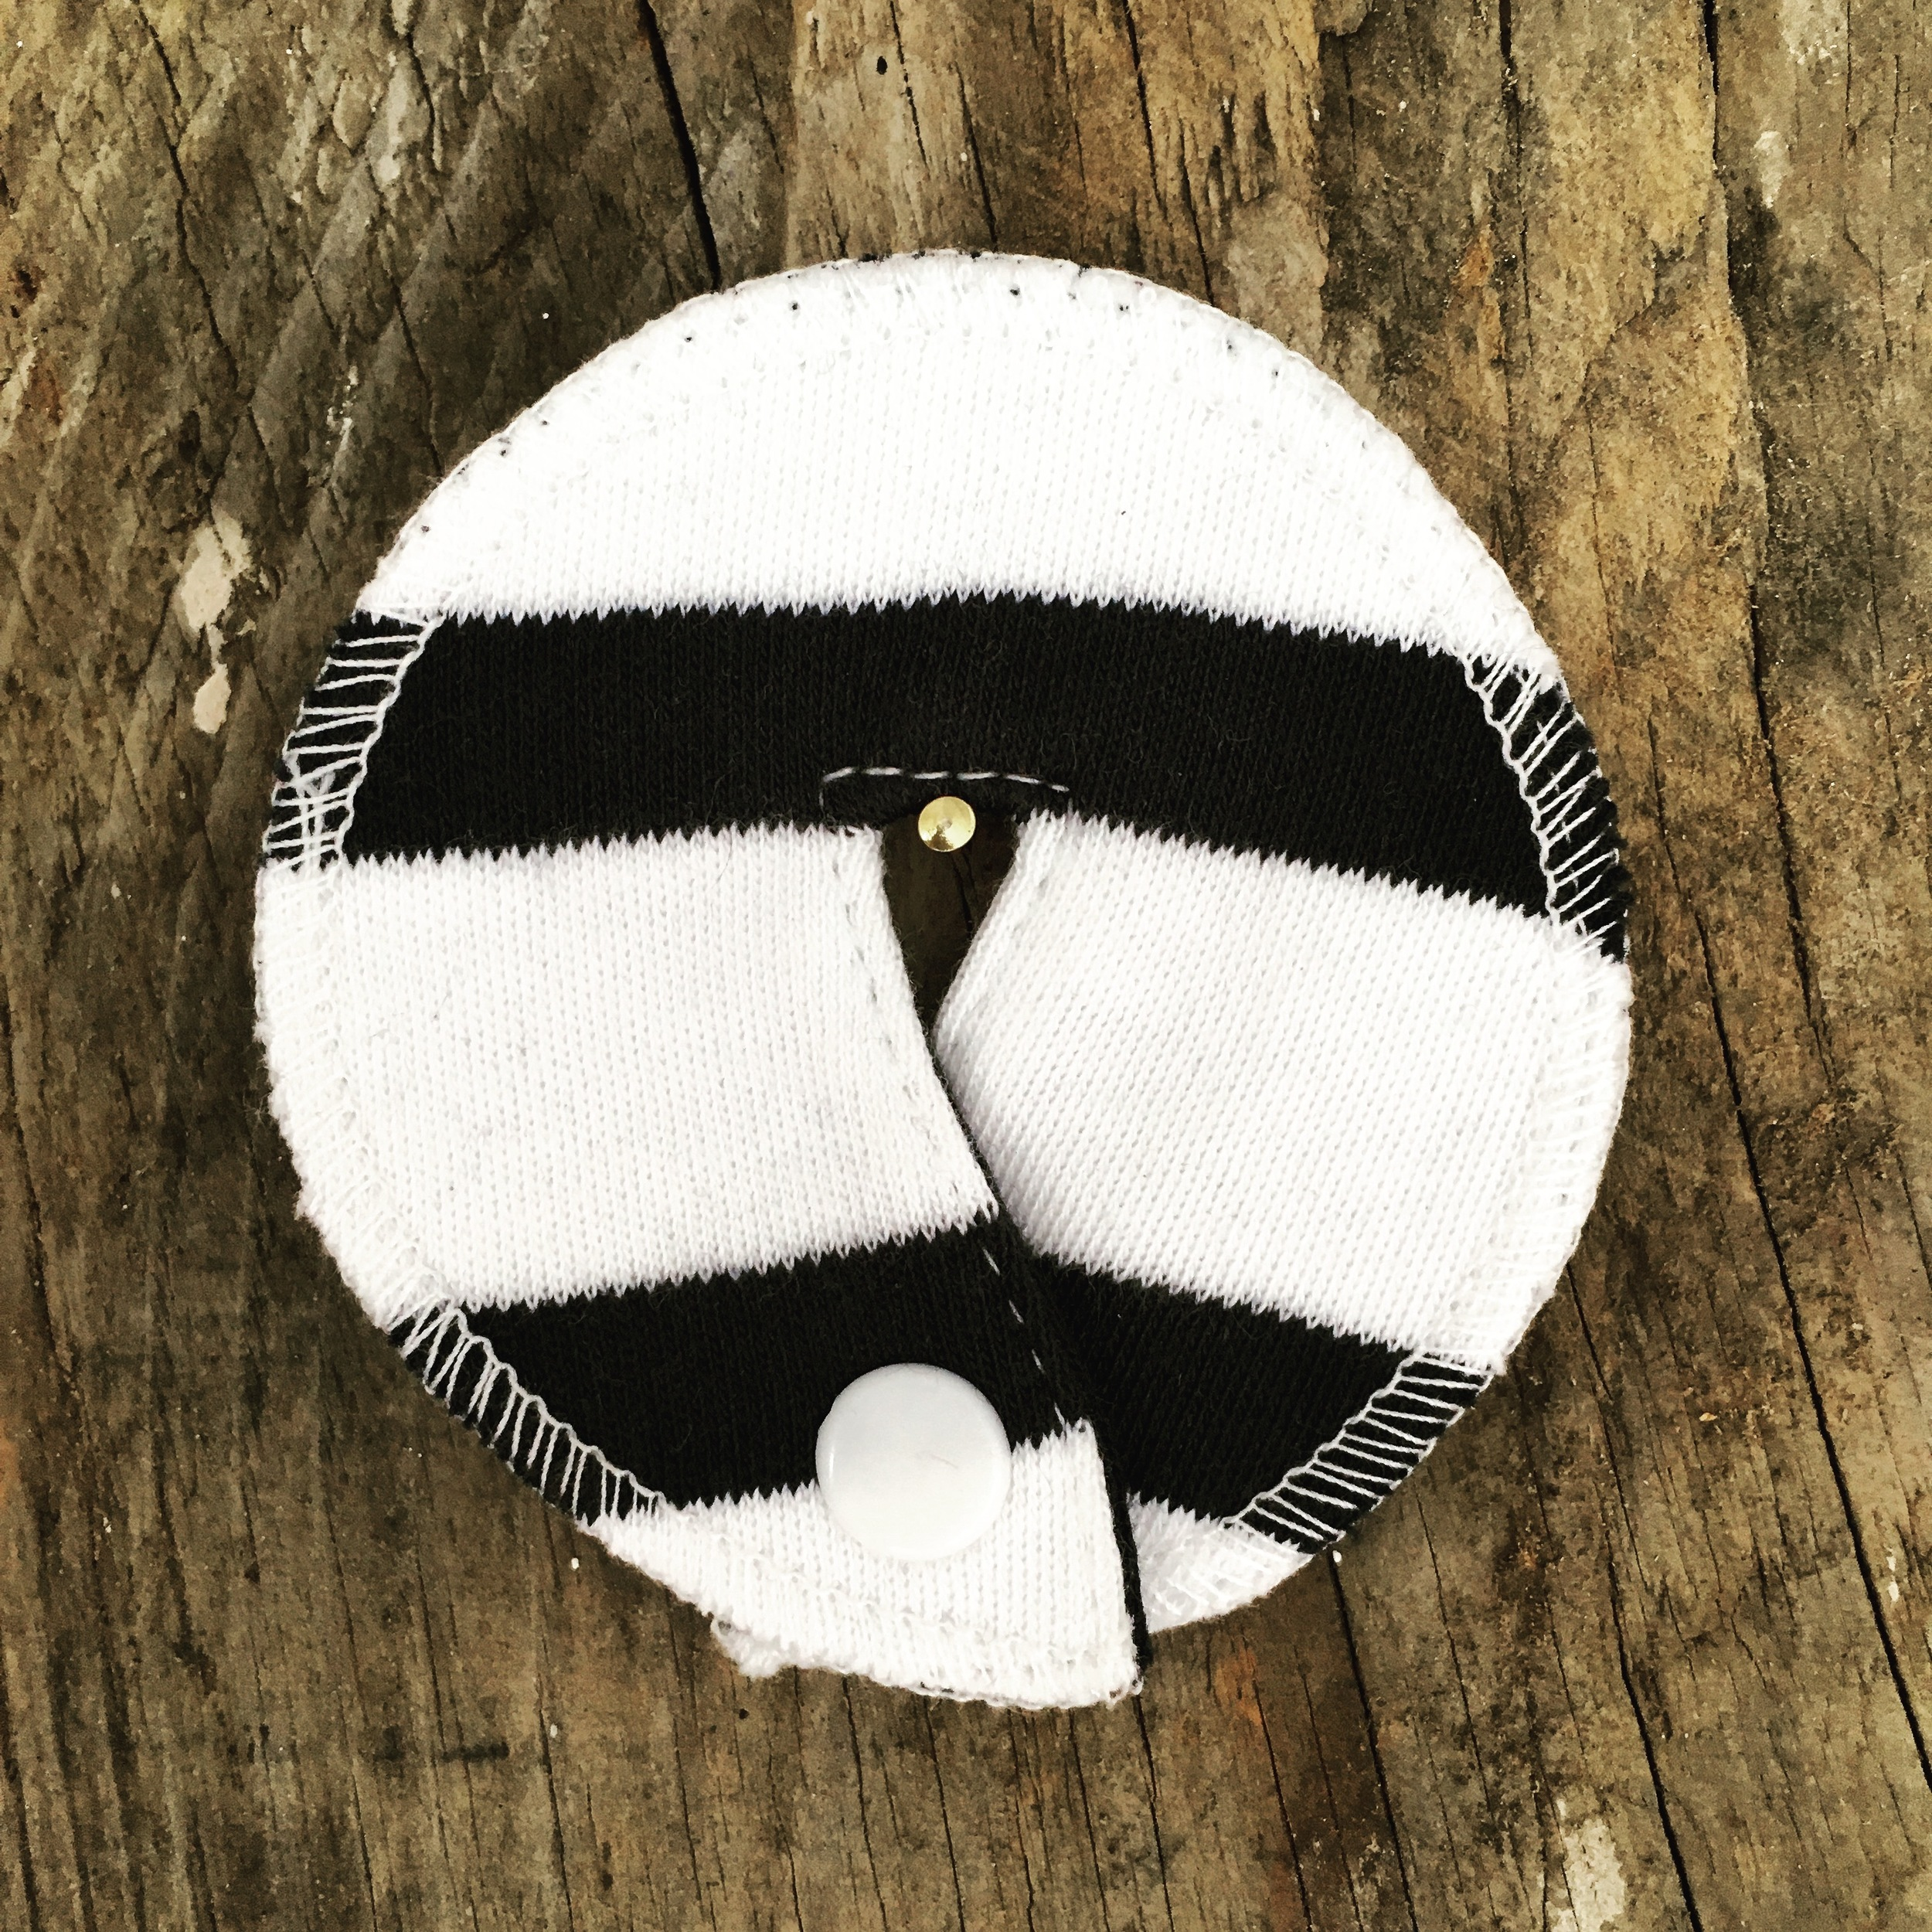 Navy stripe button cover £1.50 one size